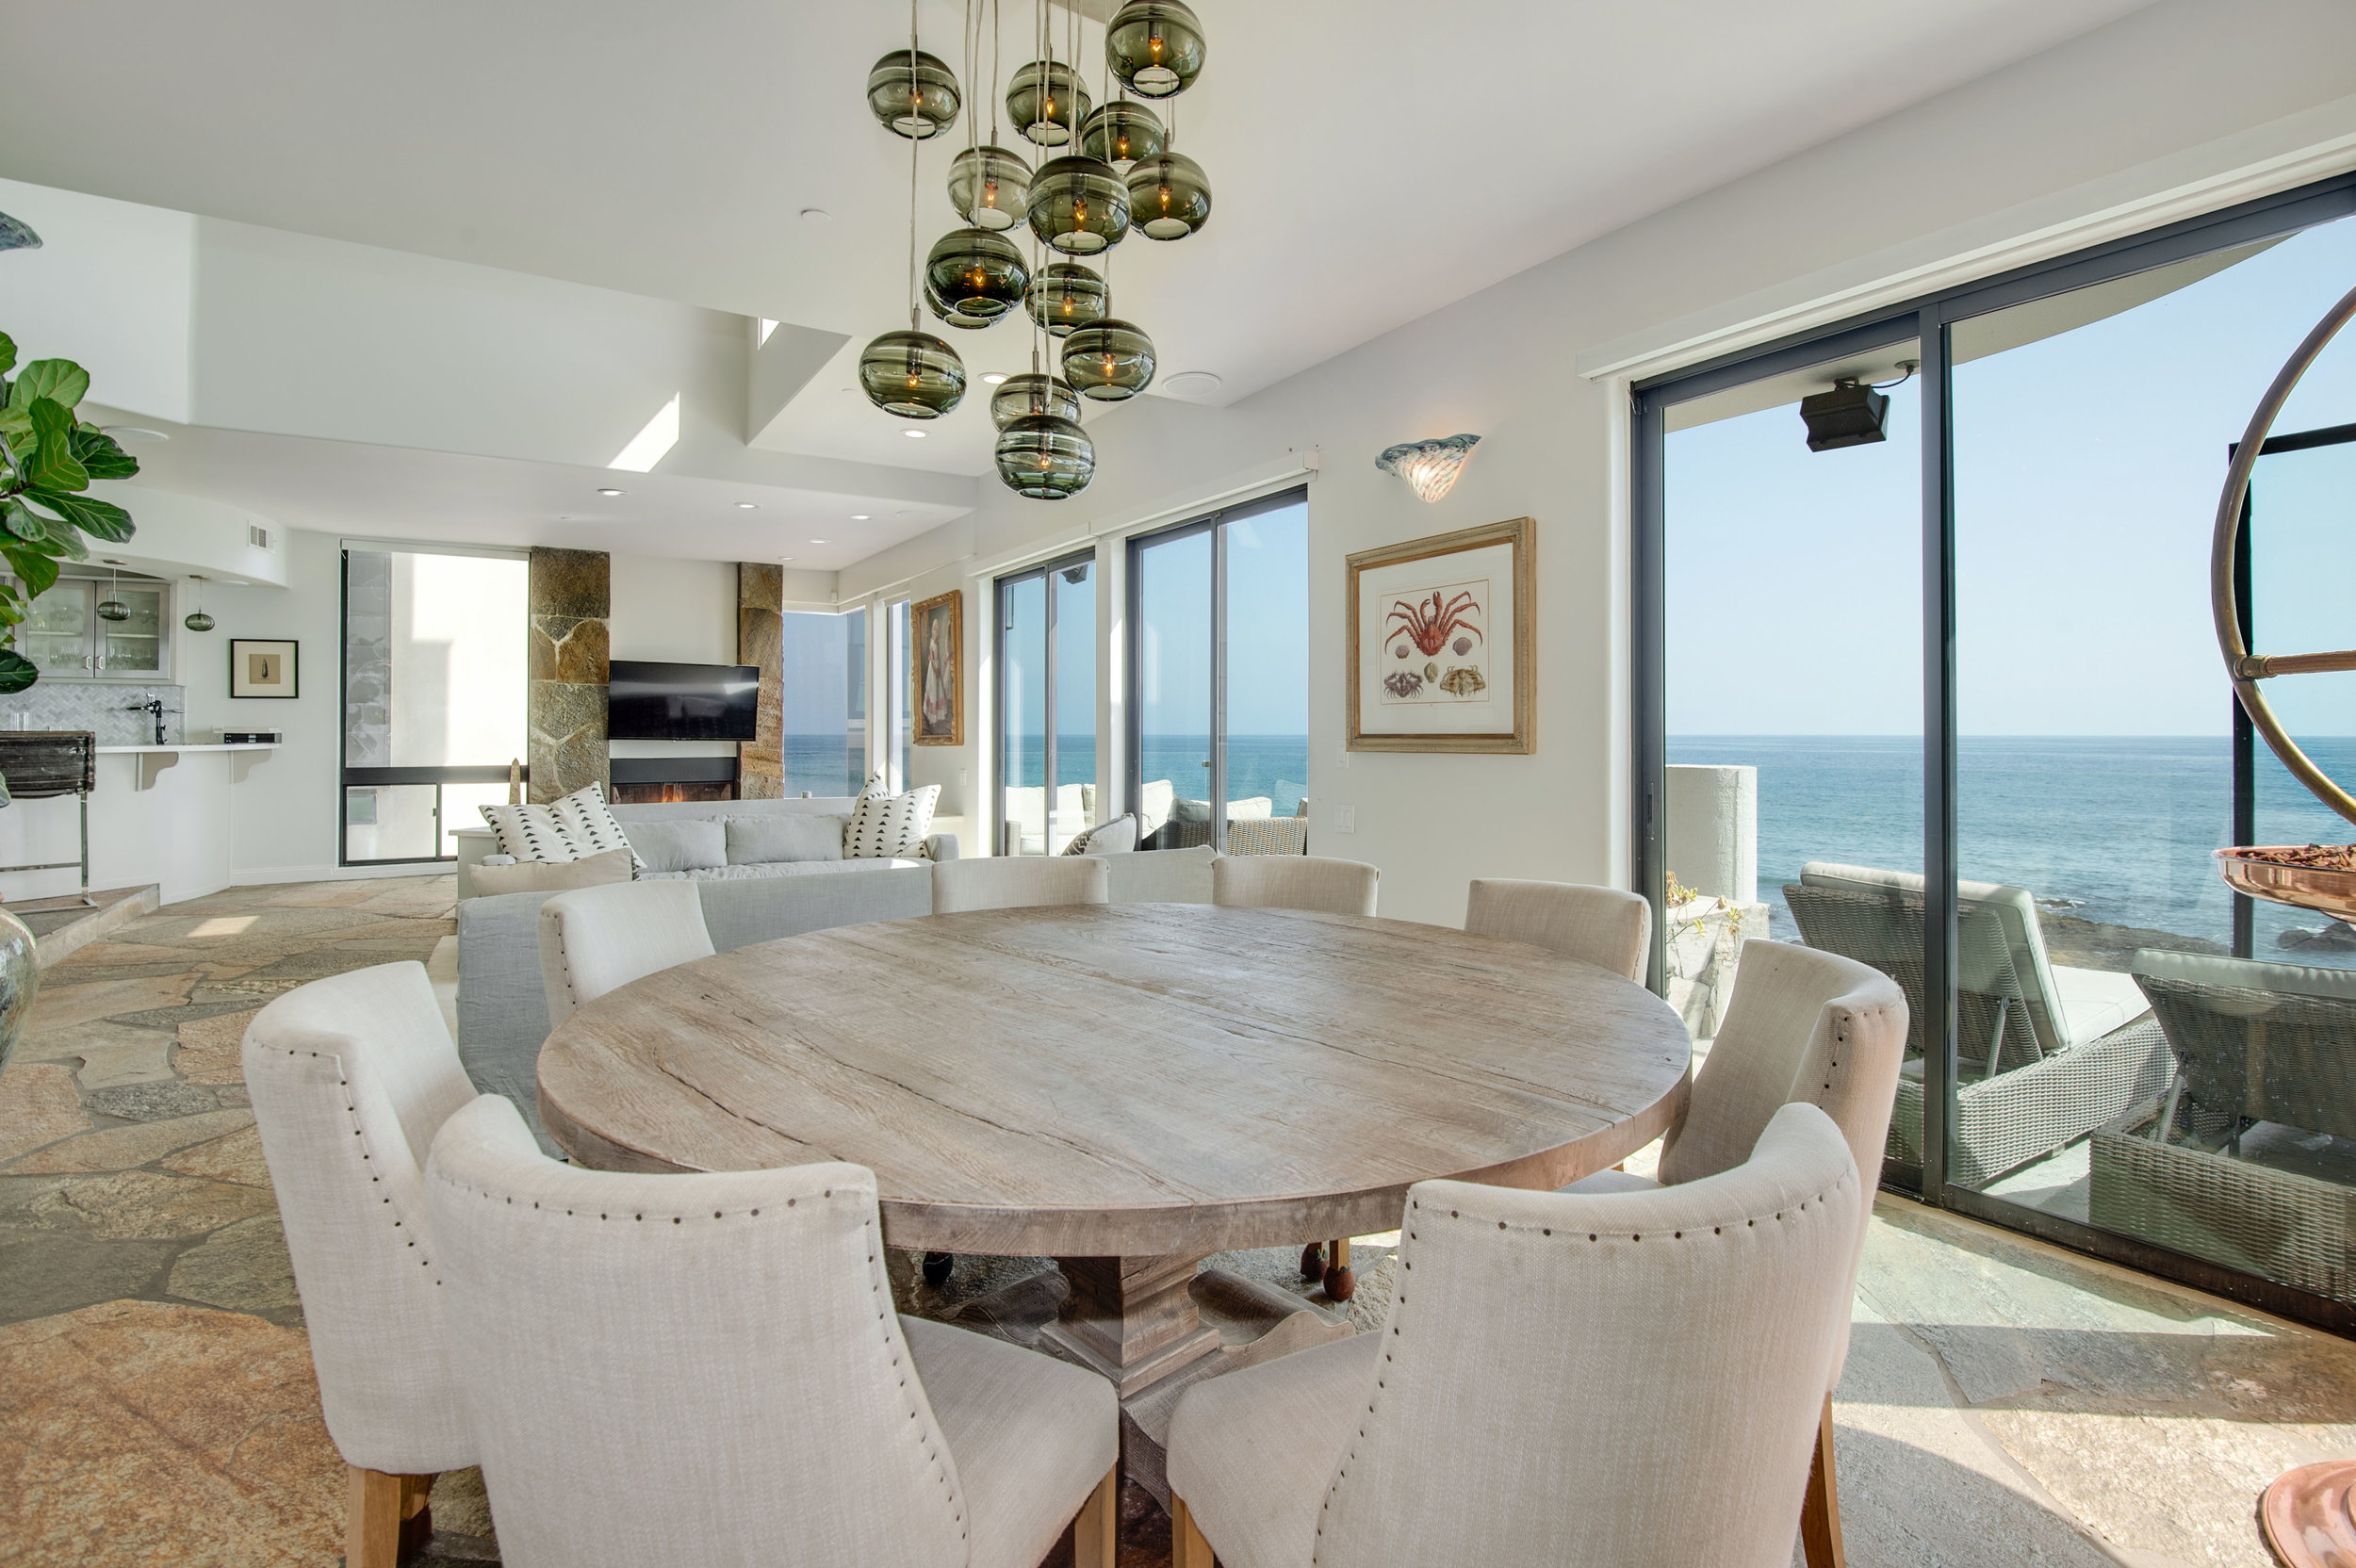 025 Dining Room 25252 Malibu Road For Sale Lease The Malibu Life Team Luxury Real Estate.jpg